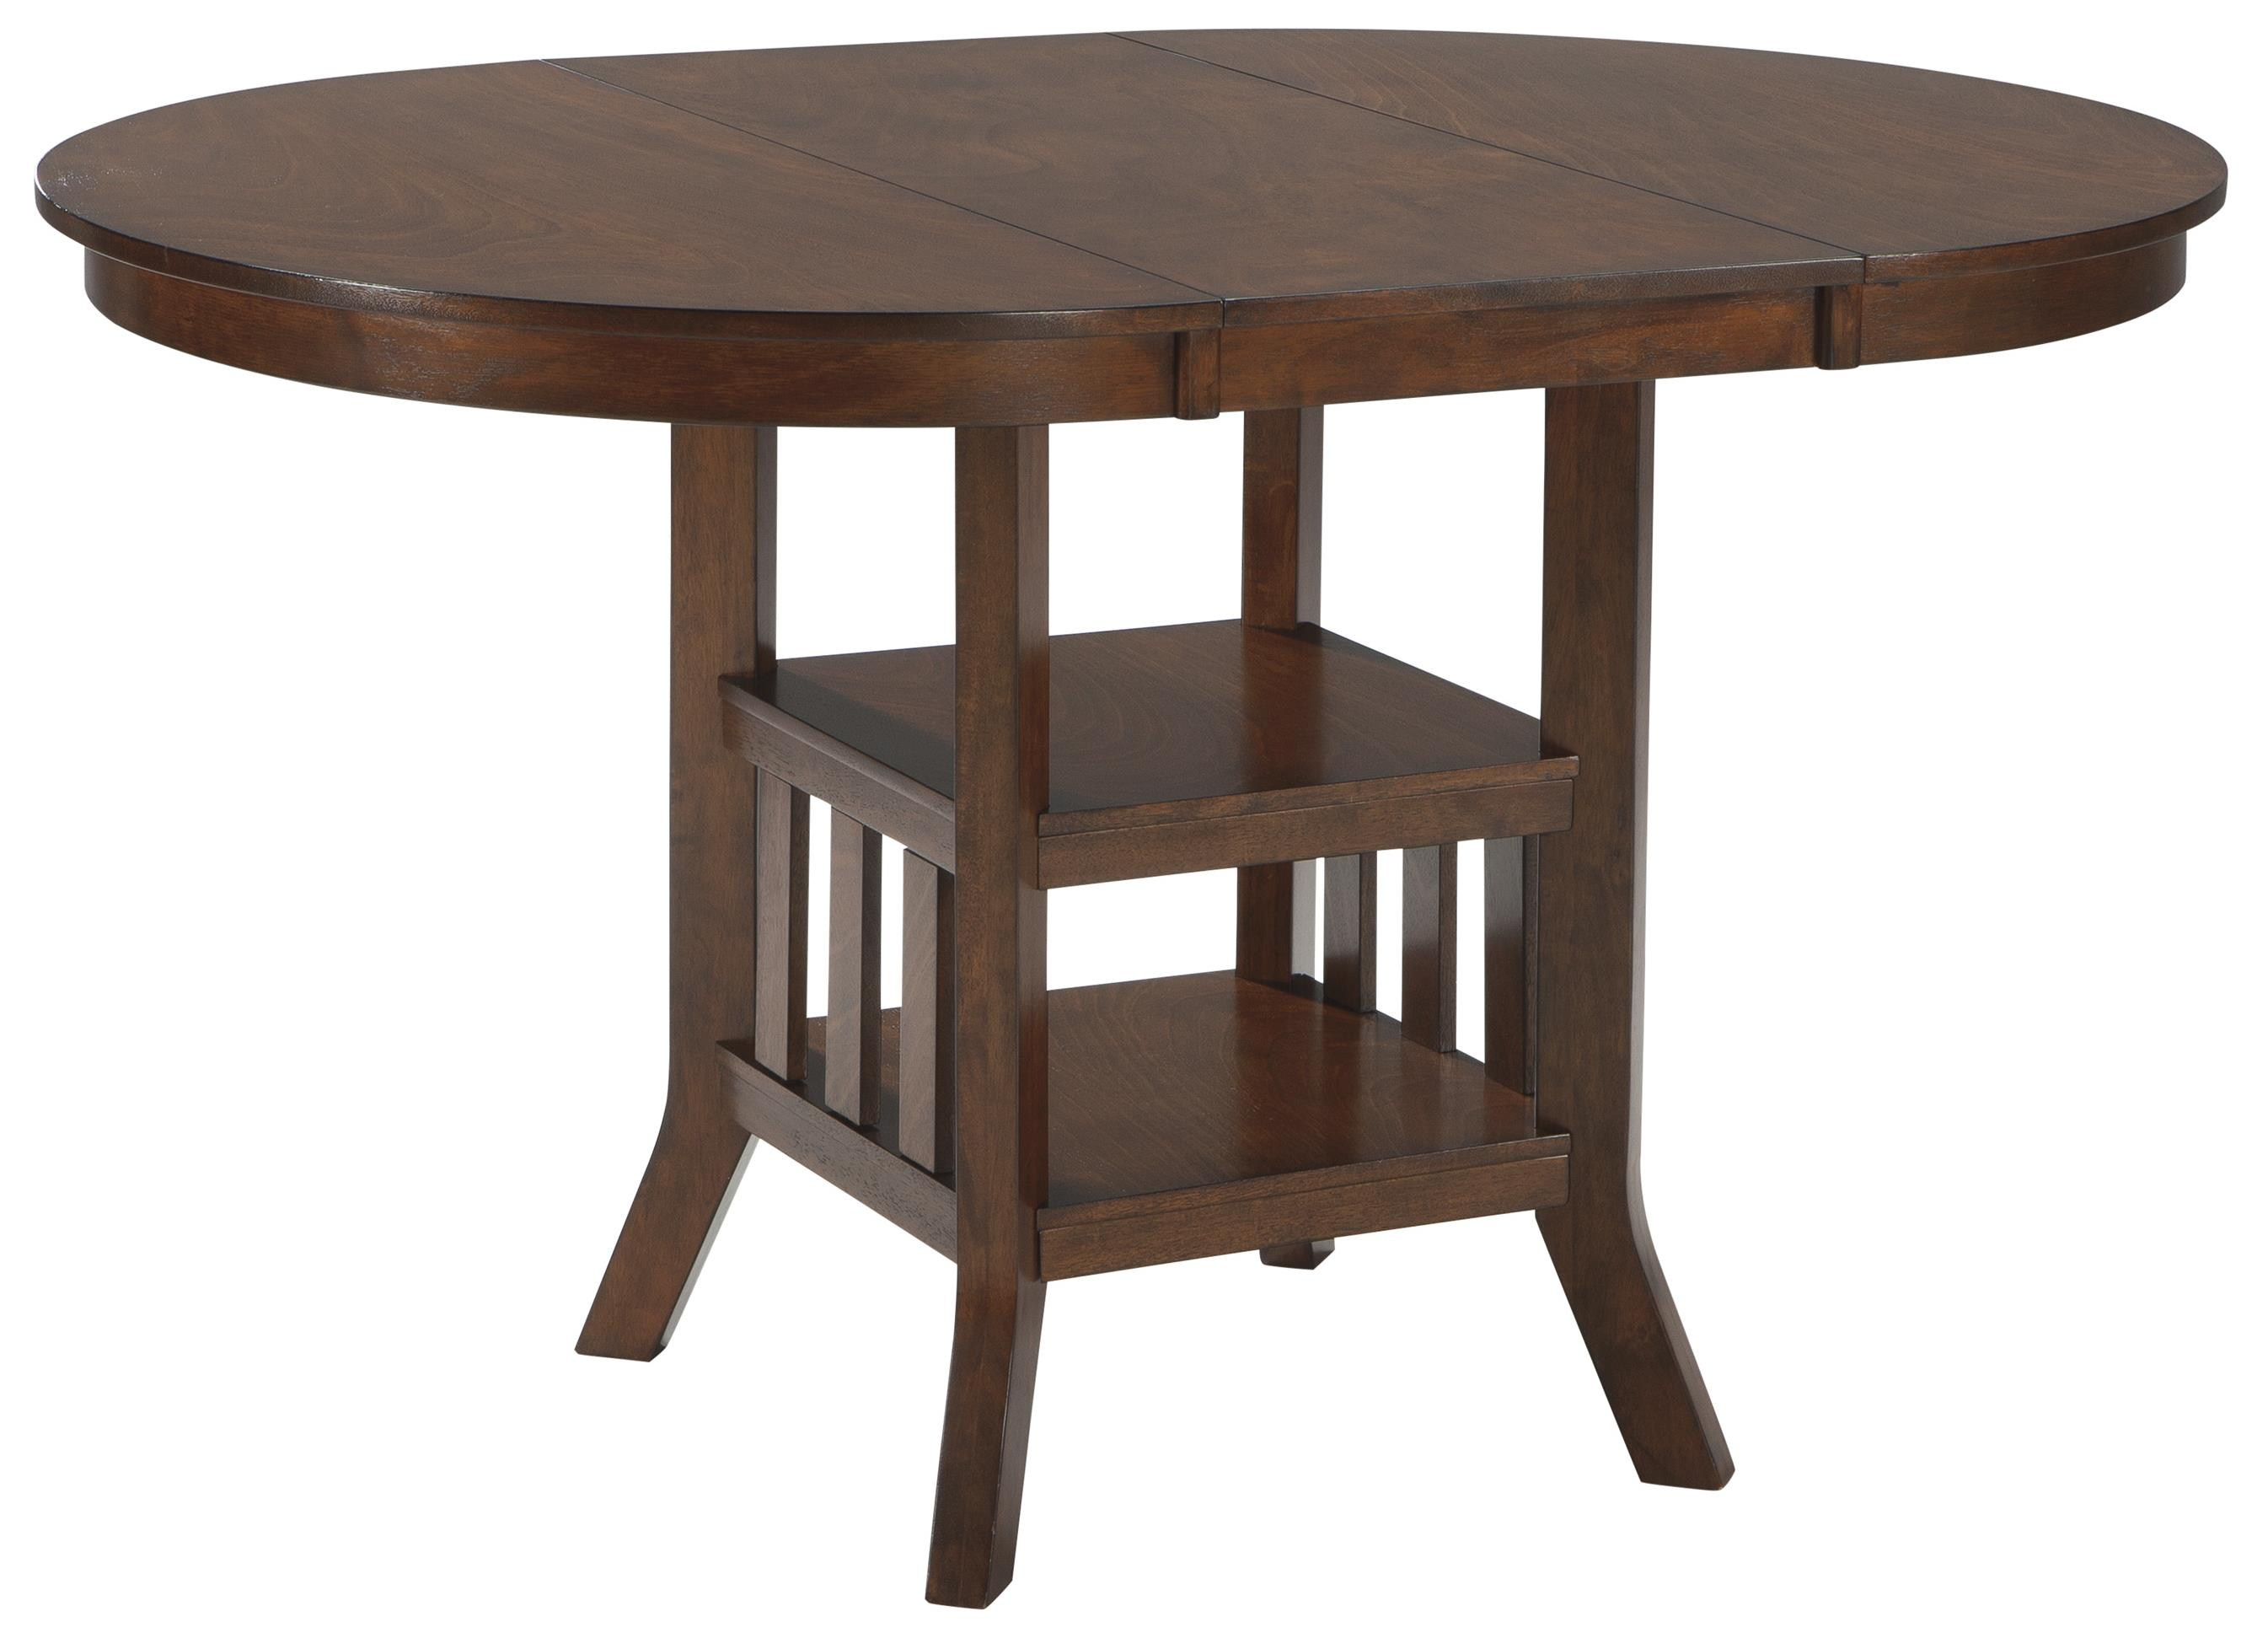 Signature Design by Ashley Renaburg Oval Dining Room Counter Extension Table - Item Number: D574-42